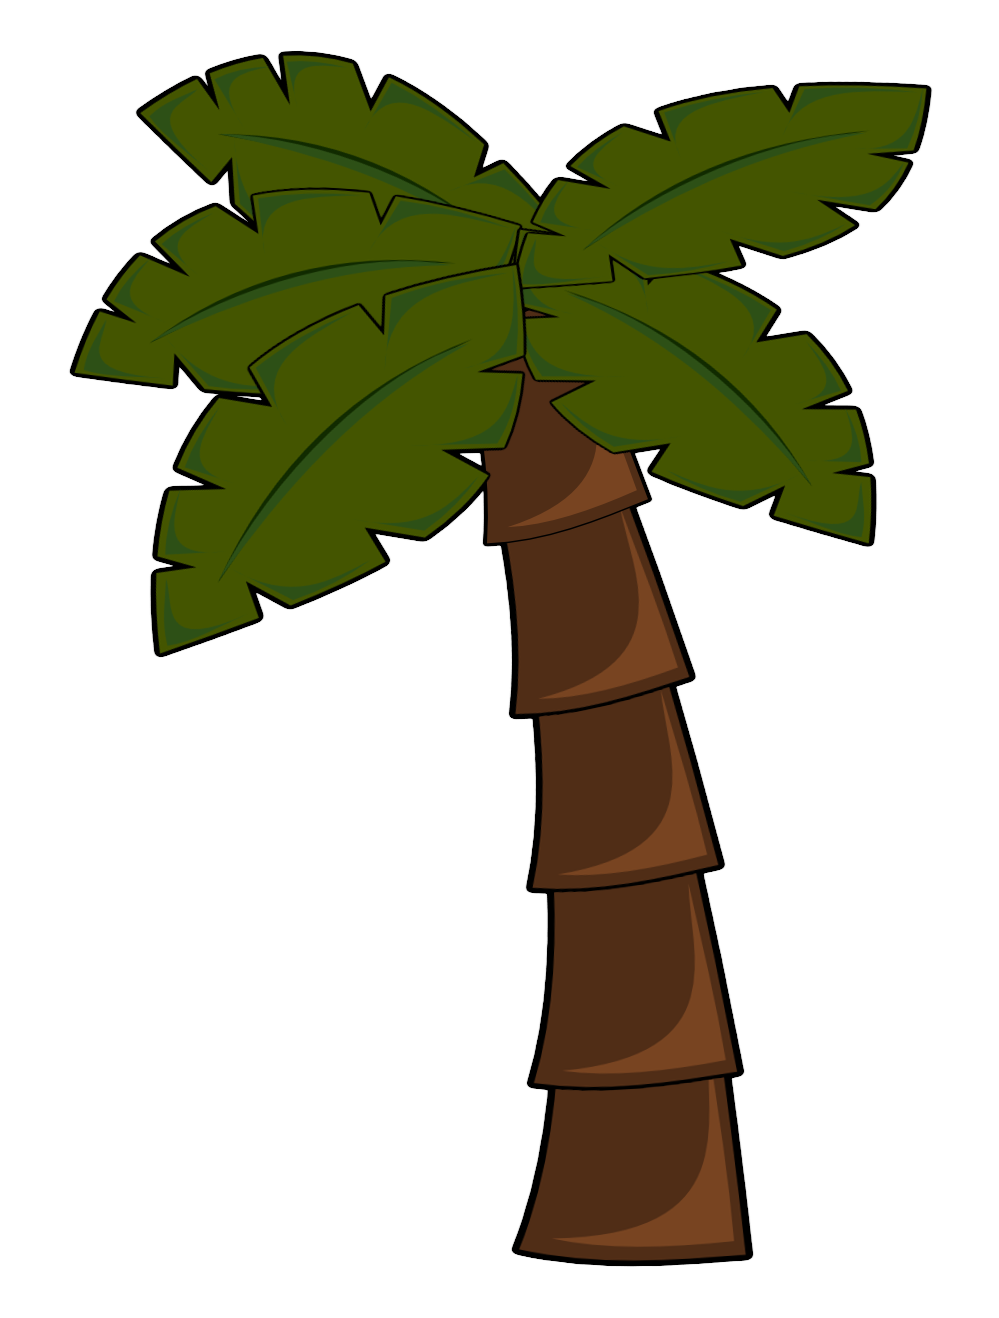 Free beach background download. Clipart trees buko